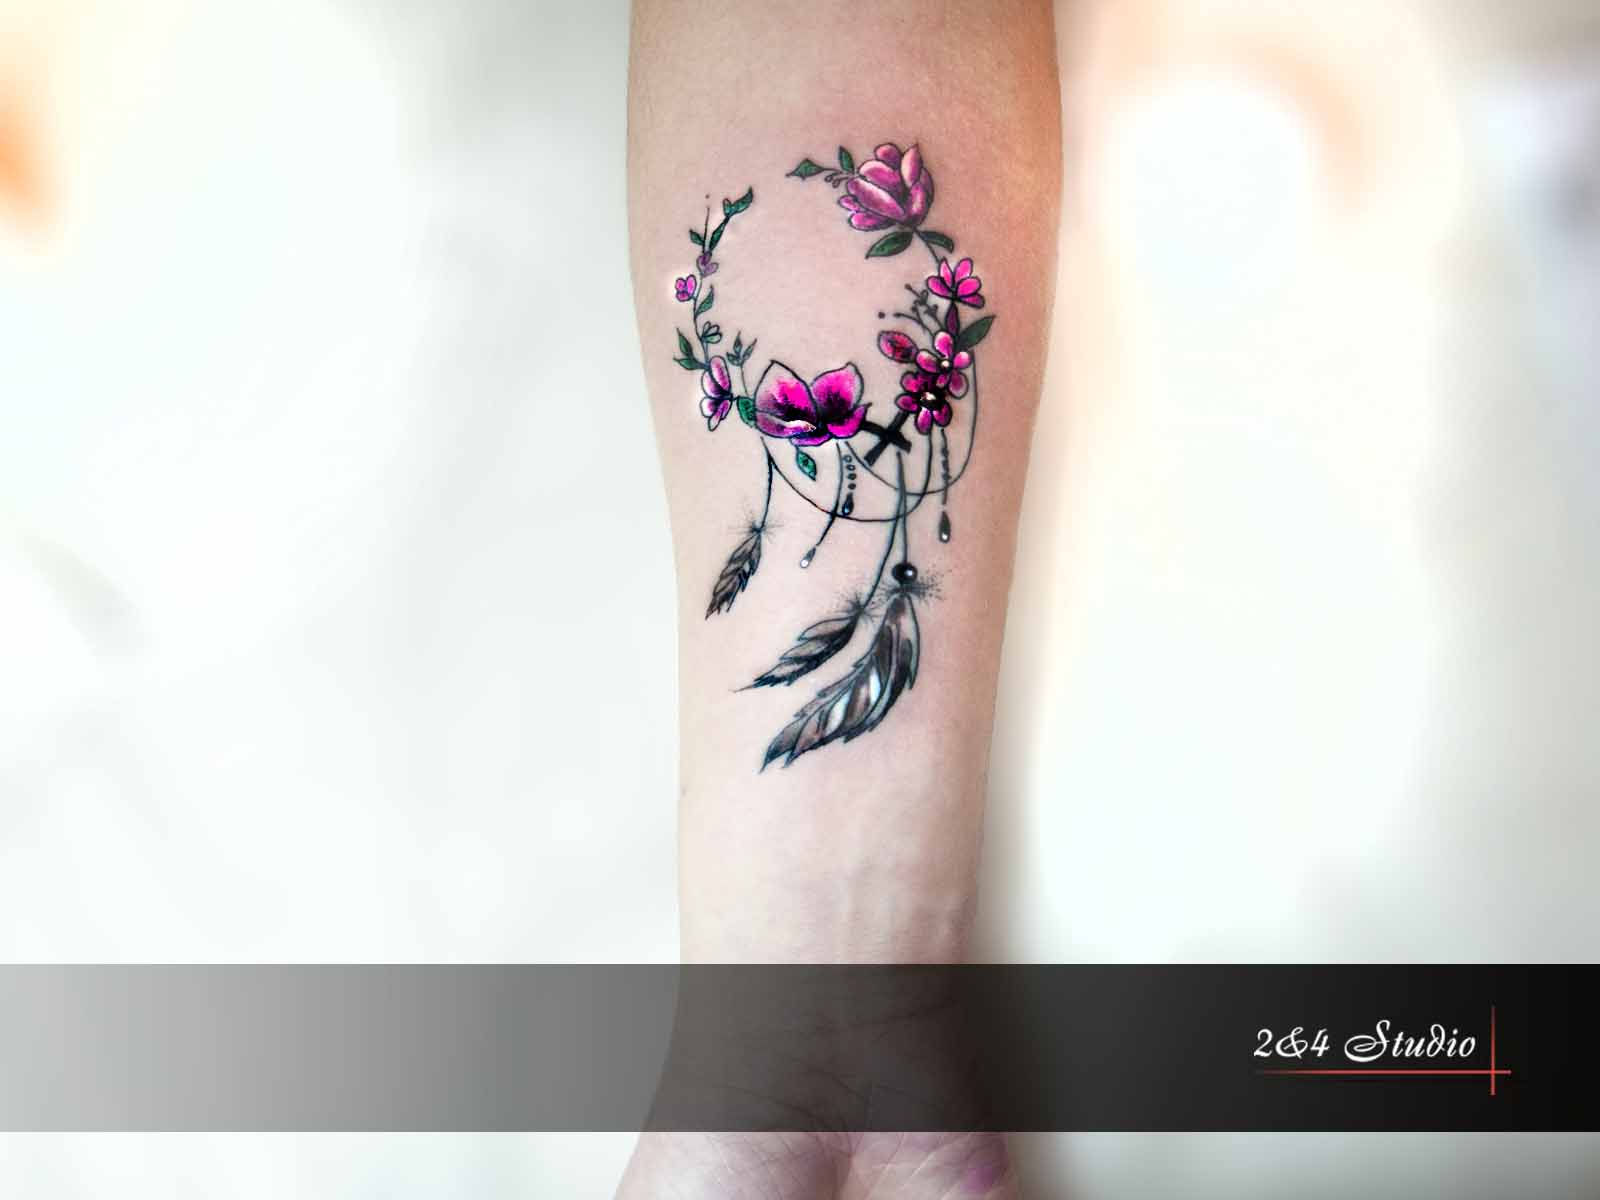 gently-tattoo-1.jpg